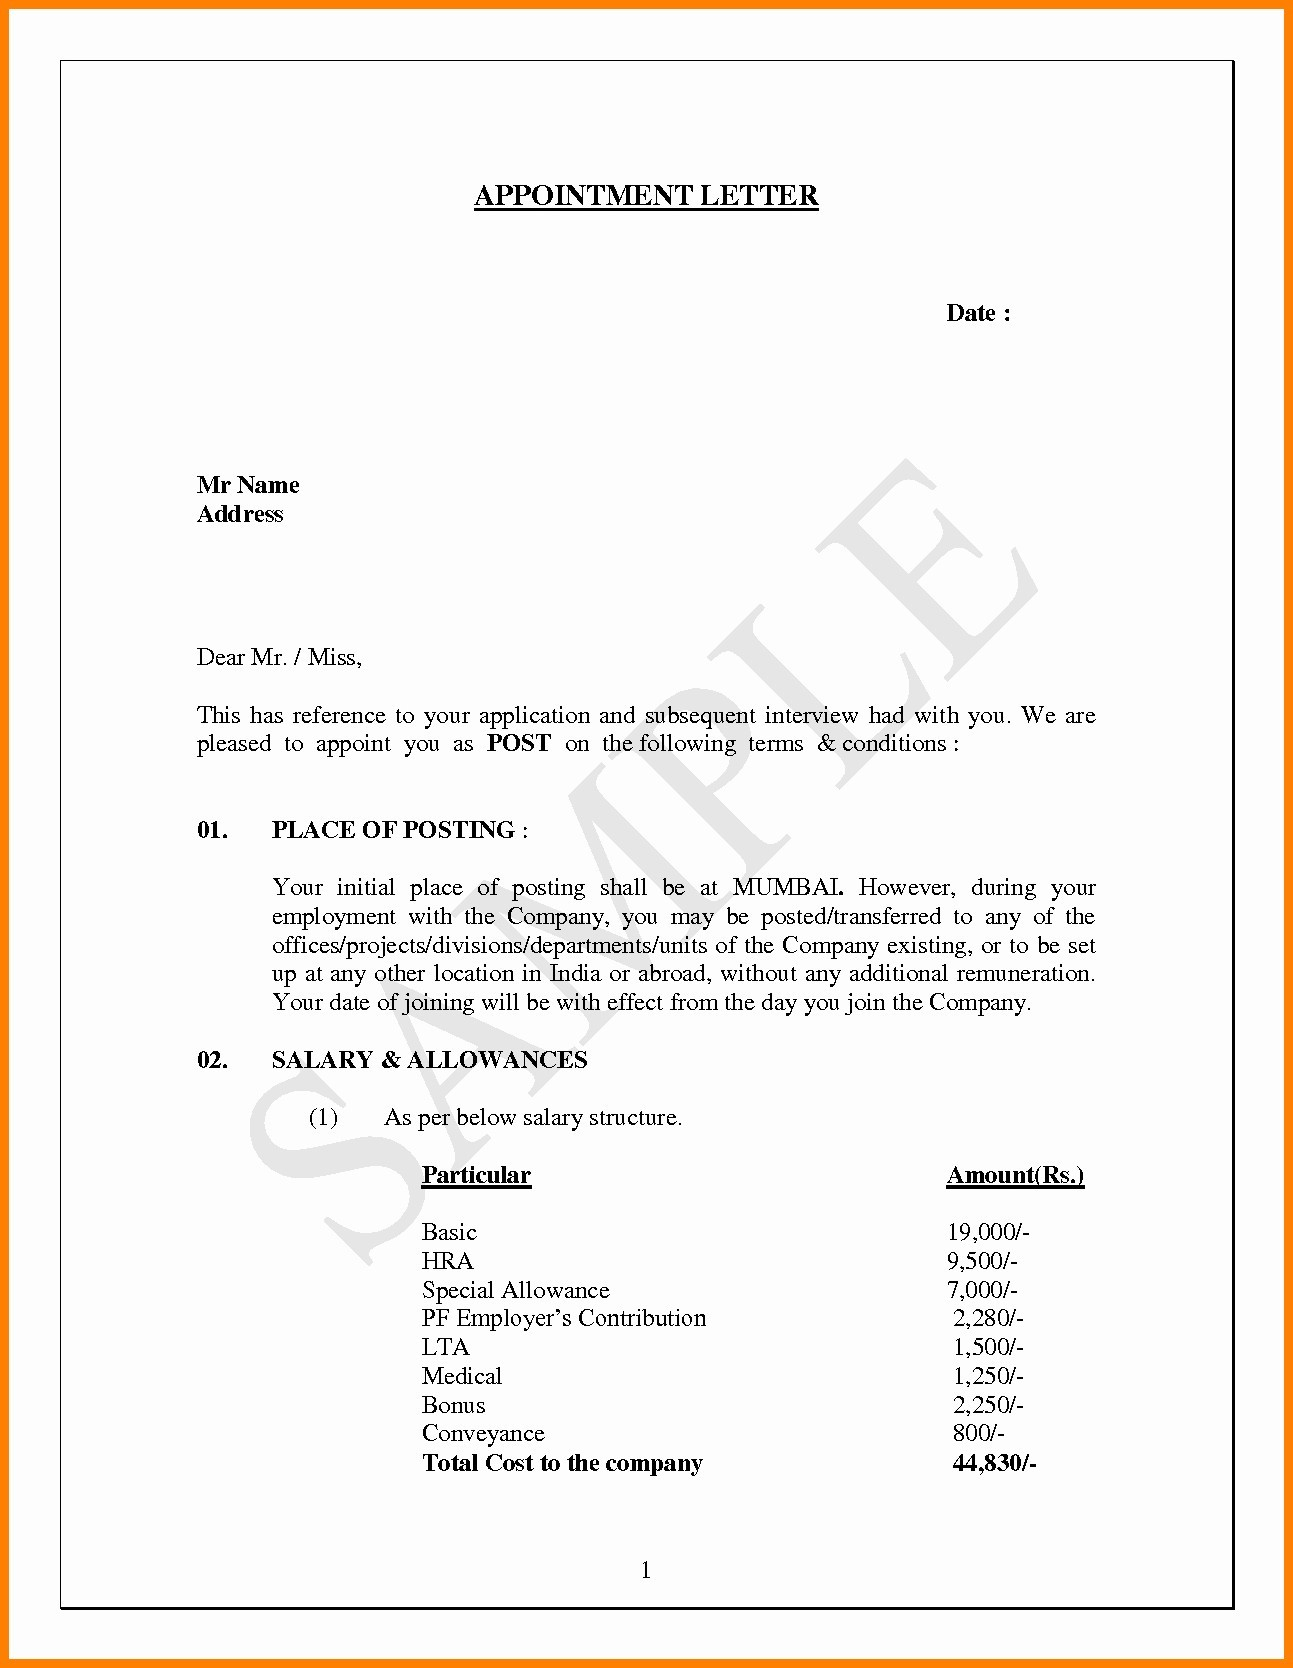 Job Offer Letter Template Pdf - Appointment Letter Sample In Word format India Copy Appointment